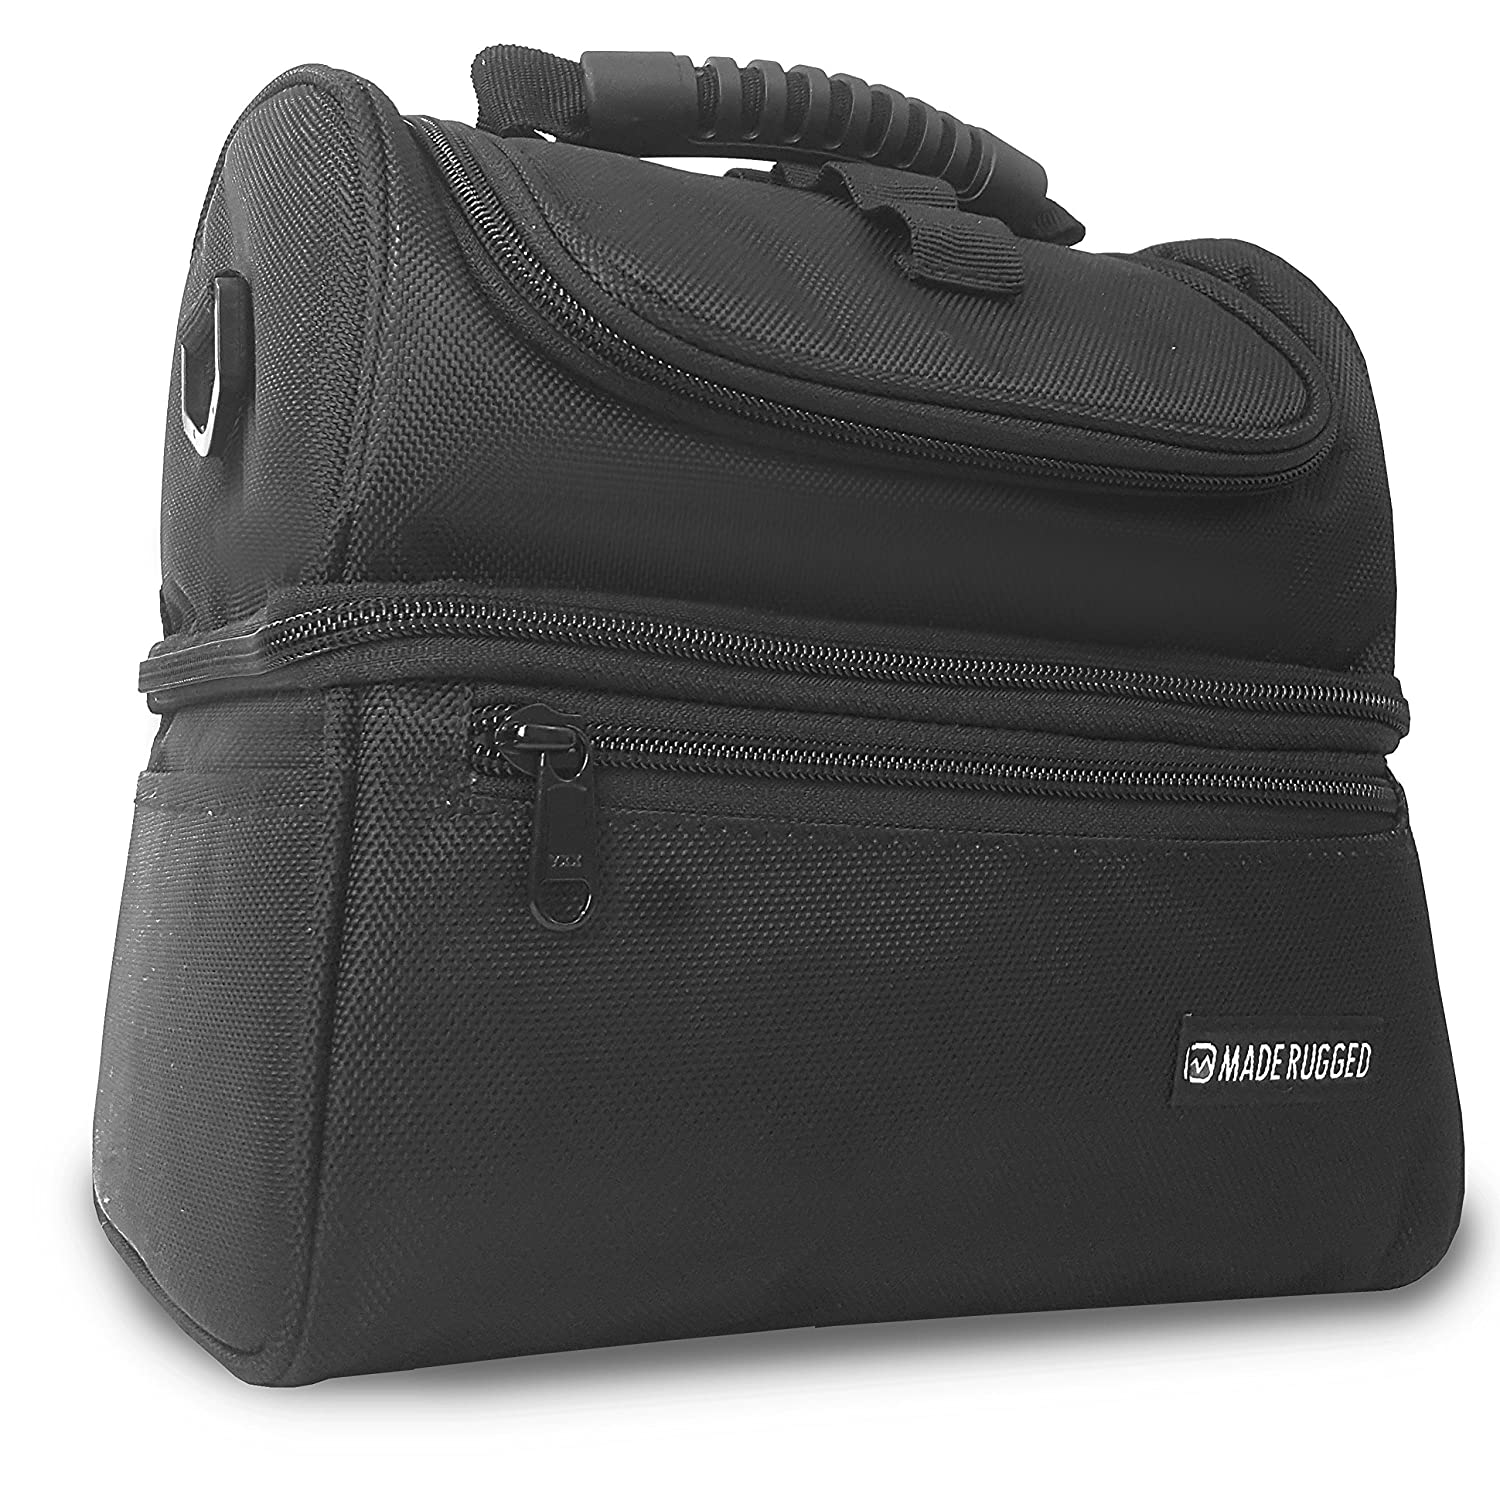 c36638eb4c4a MADE RUGGED Heavy Duty Insulated Lunch Bag For Workers, Men, Women,  Reusable & Collapsible Cooler Lunch Box (Black)